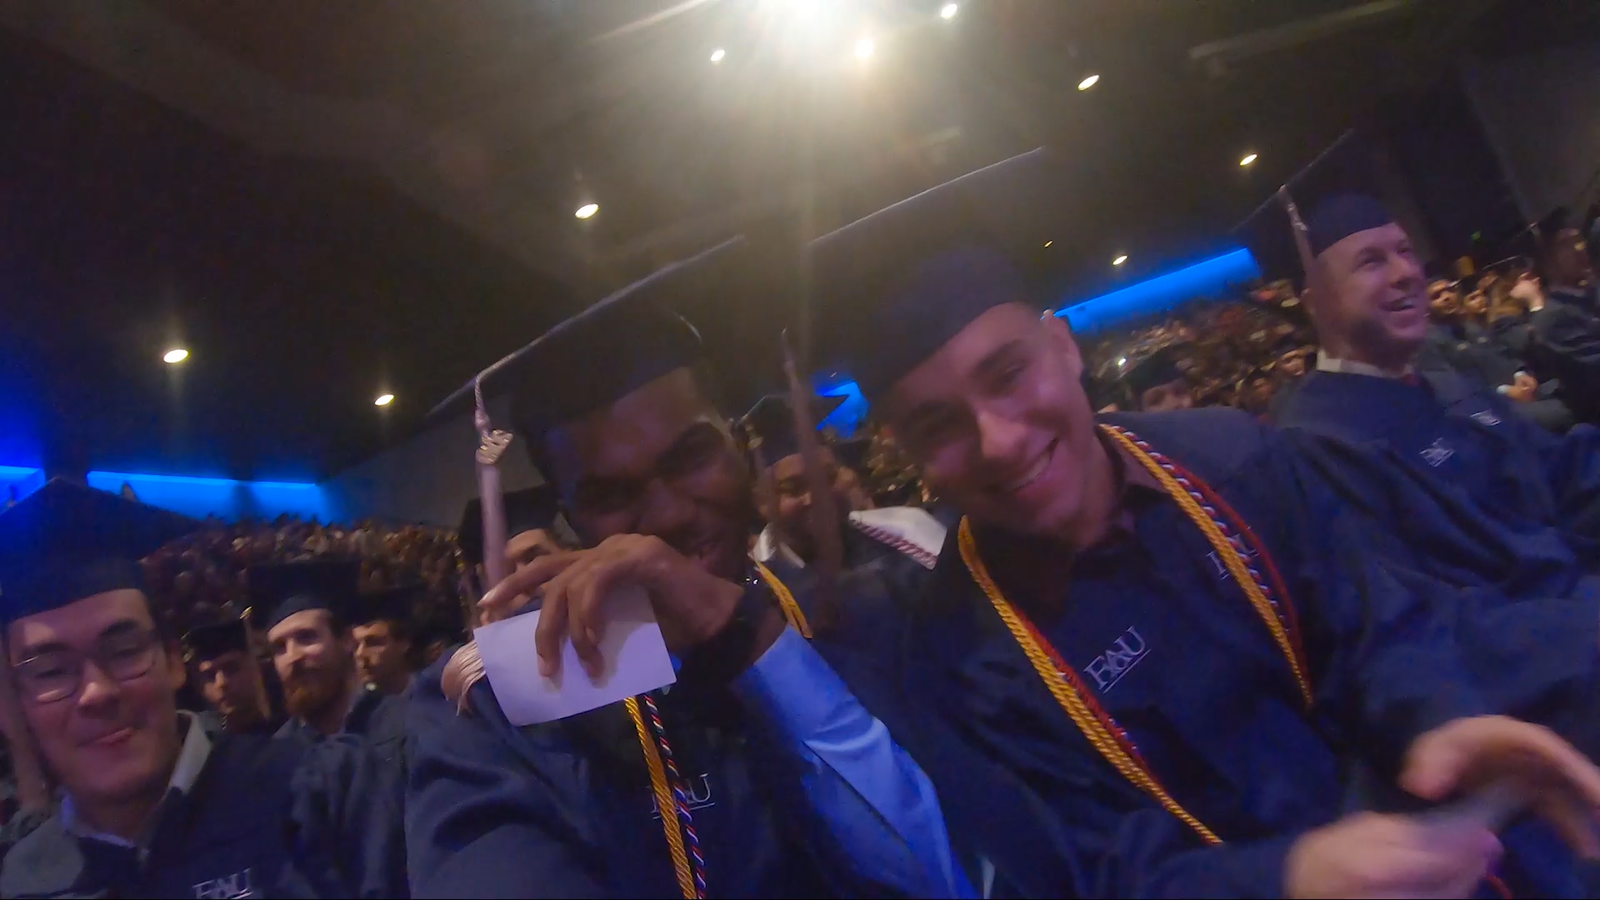 Graduates, faculty and staff passed around a GoPro during FAU's 2019 Fall Commencement Ceremony. (Florida Atlantic University)